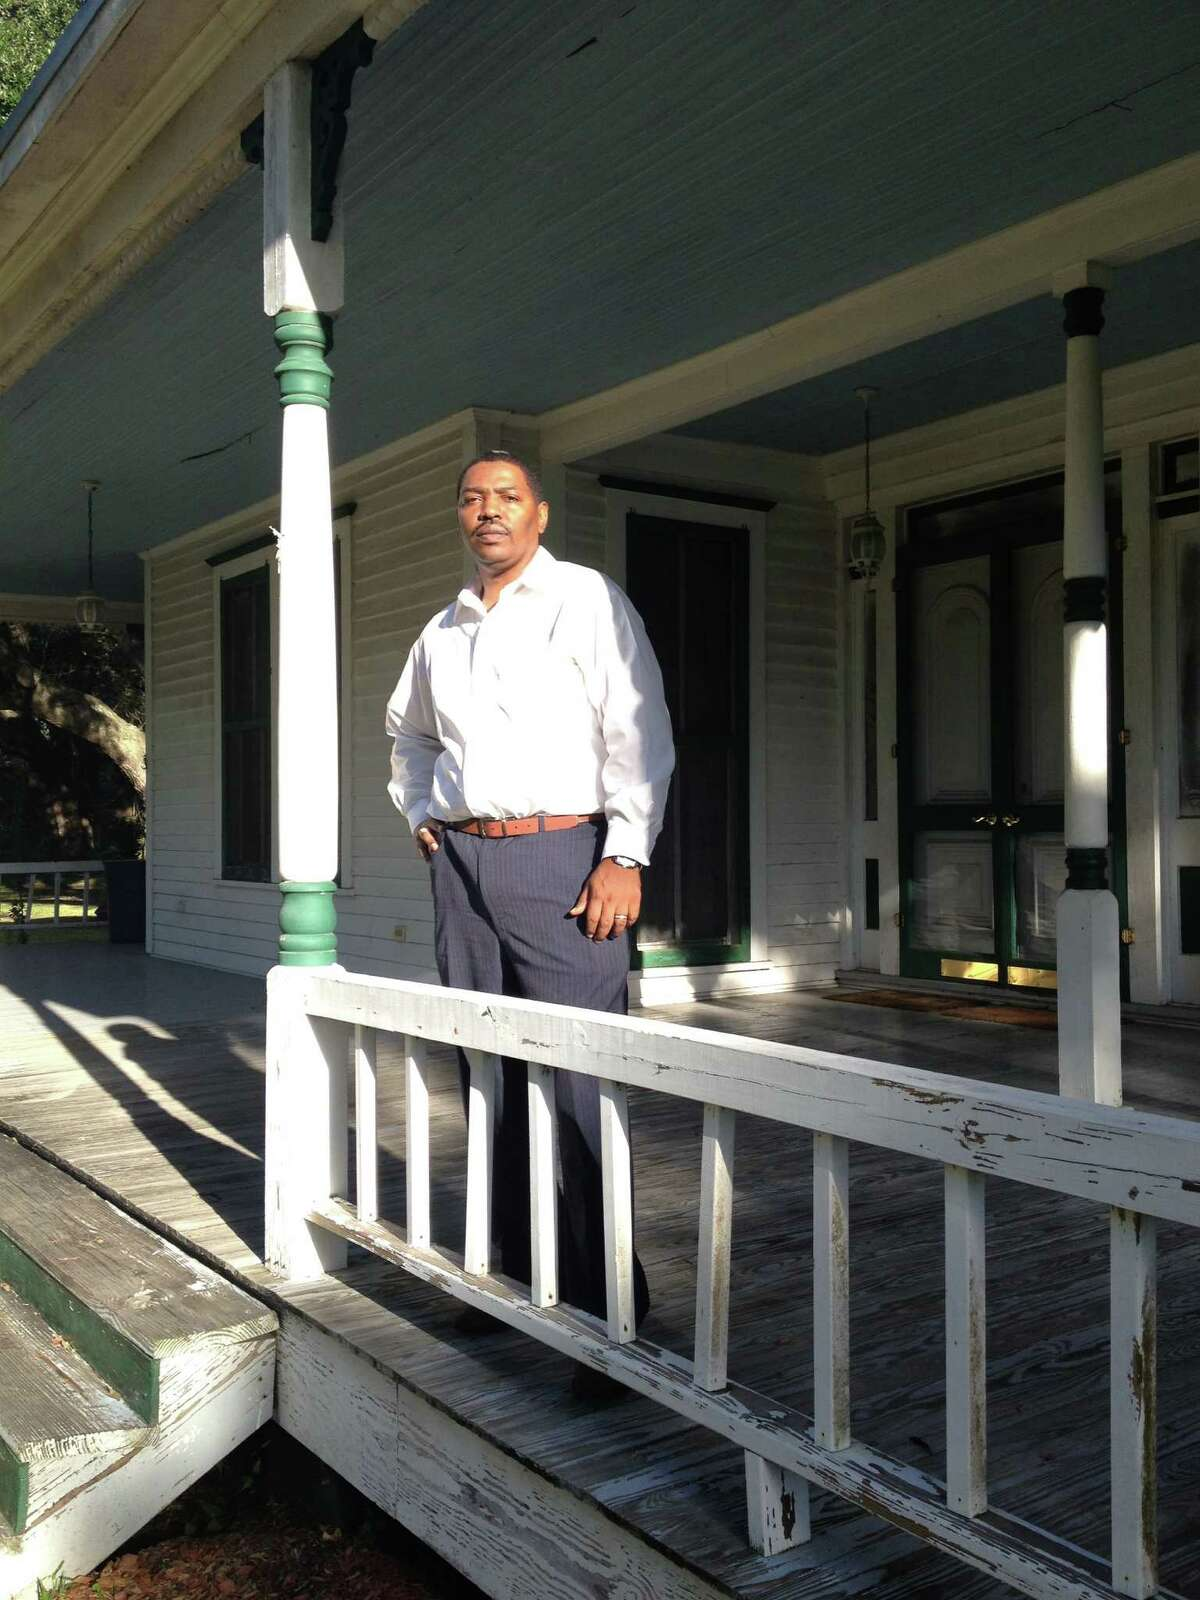 Sam Collins hopes to turn the home of Confederate Army veteran Henry Martyn Stringfellow into a learning center for the community.